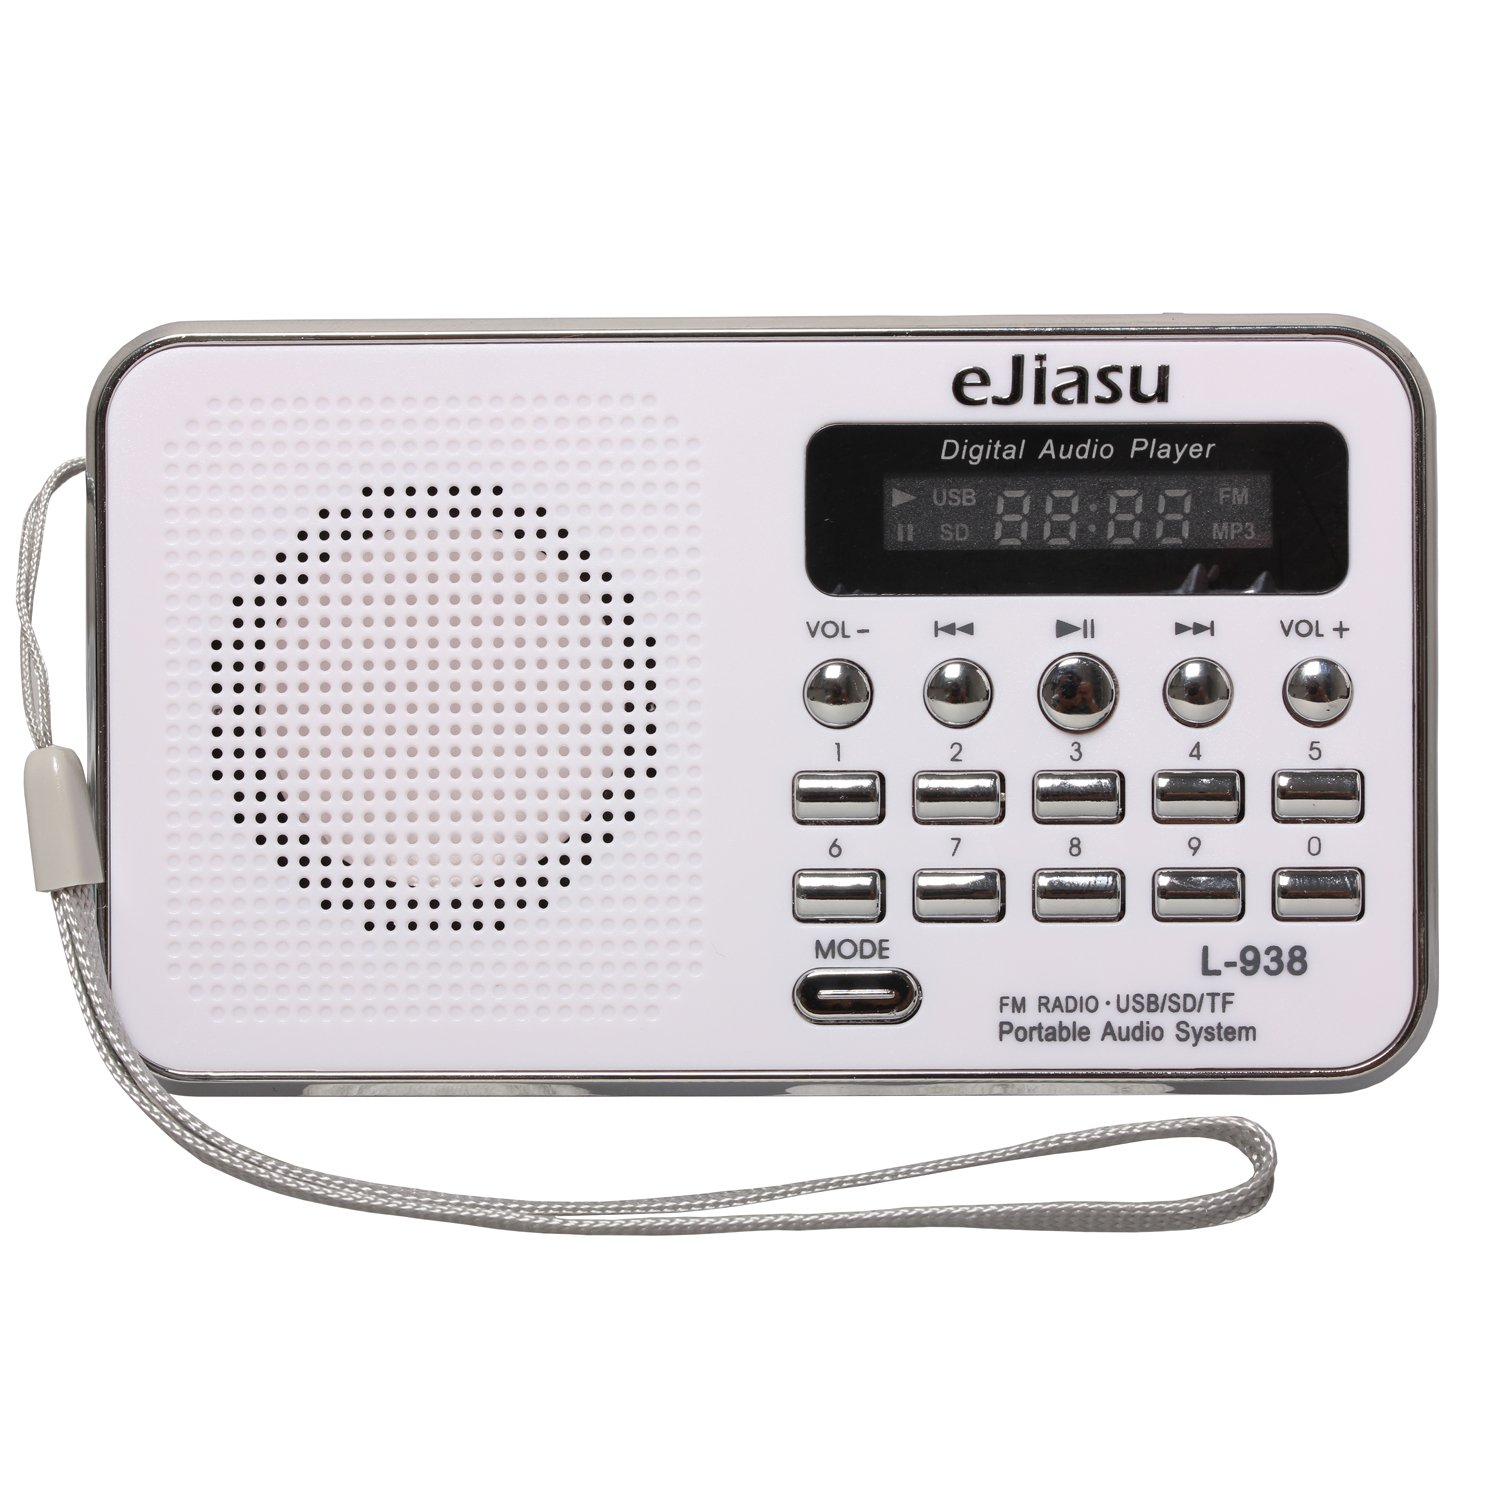 Portable Rechargeable Radio, eJiasu Small Radio Mini Digital FM Radio Battery Radio Support MP3 Player TF SD Card USB Port LED Screen Display Flashlight Rechargeable Battery(white)